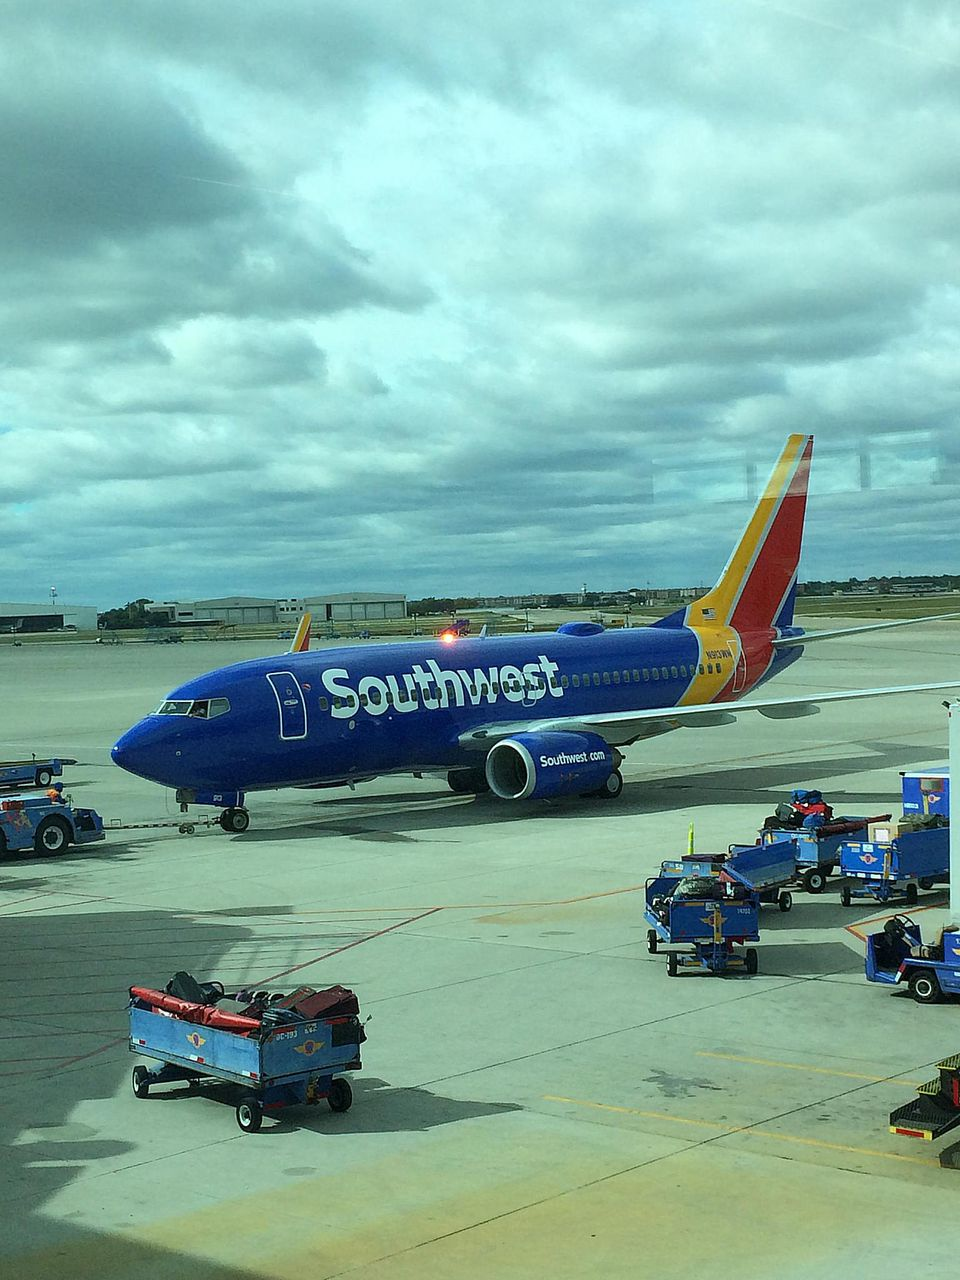 What Are North American Airlines Policies On Bereavement